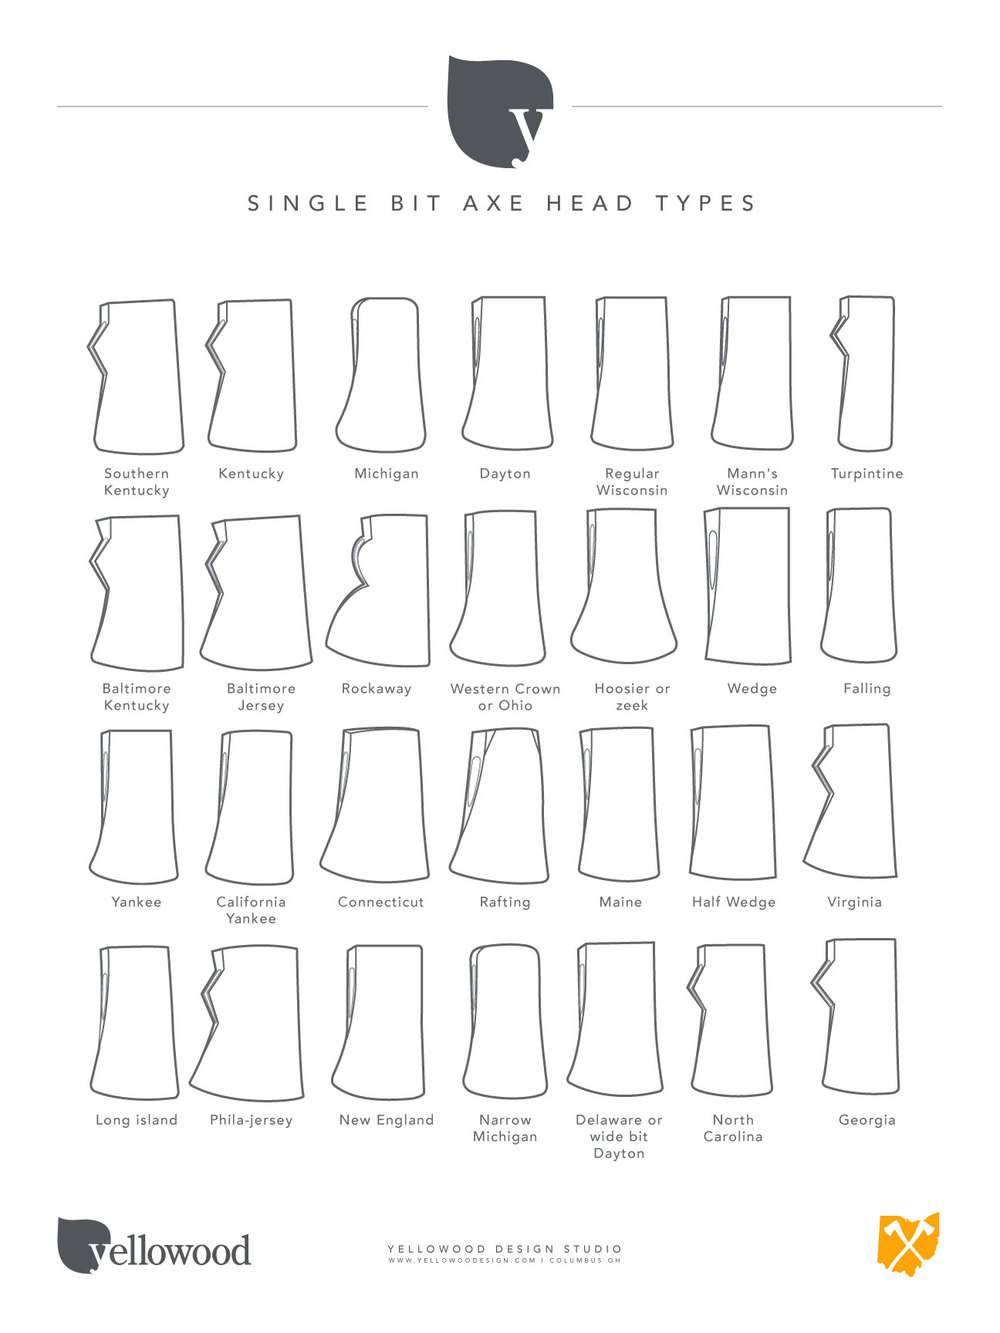 These are the most commonly known single bit axe head types. Axe heads were altered to best suit the task they were performing, as well as their location.